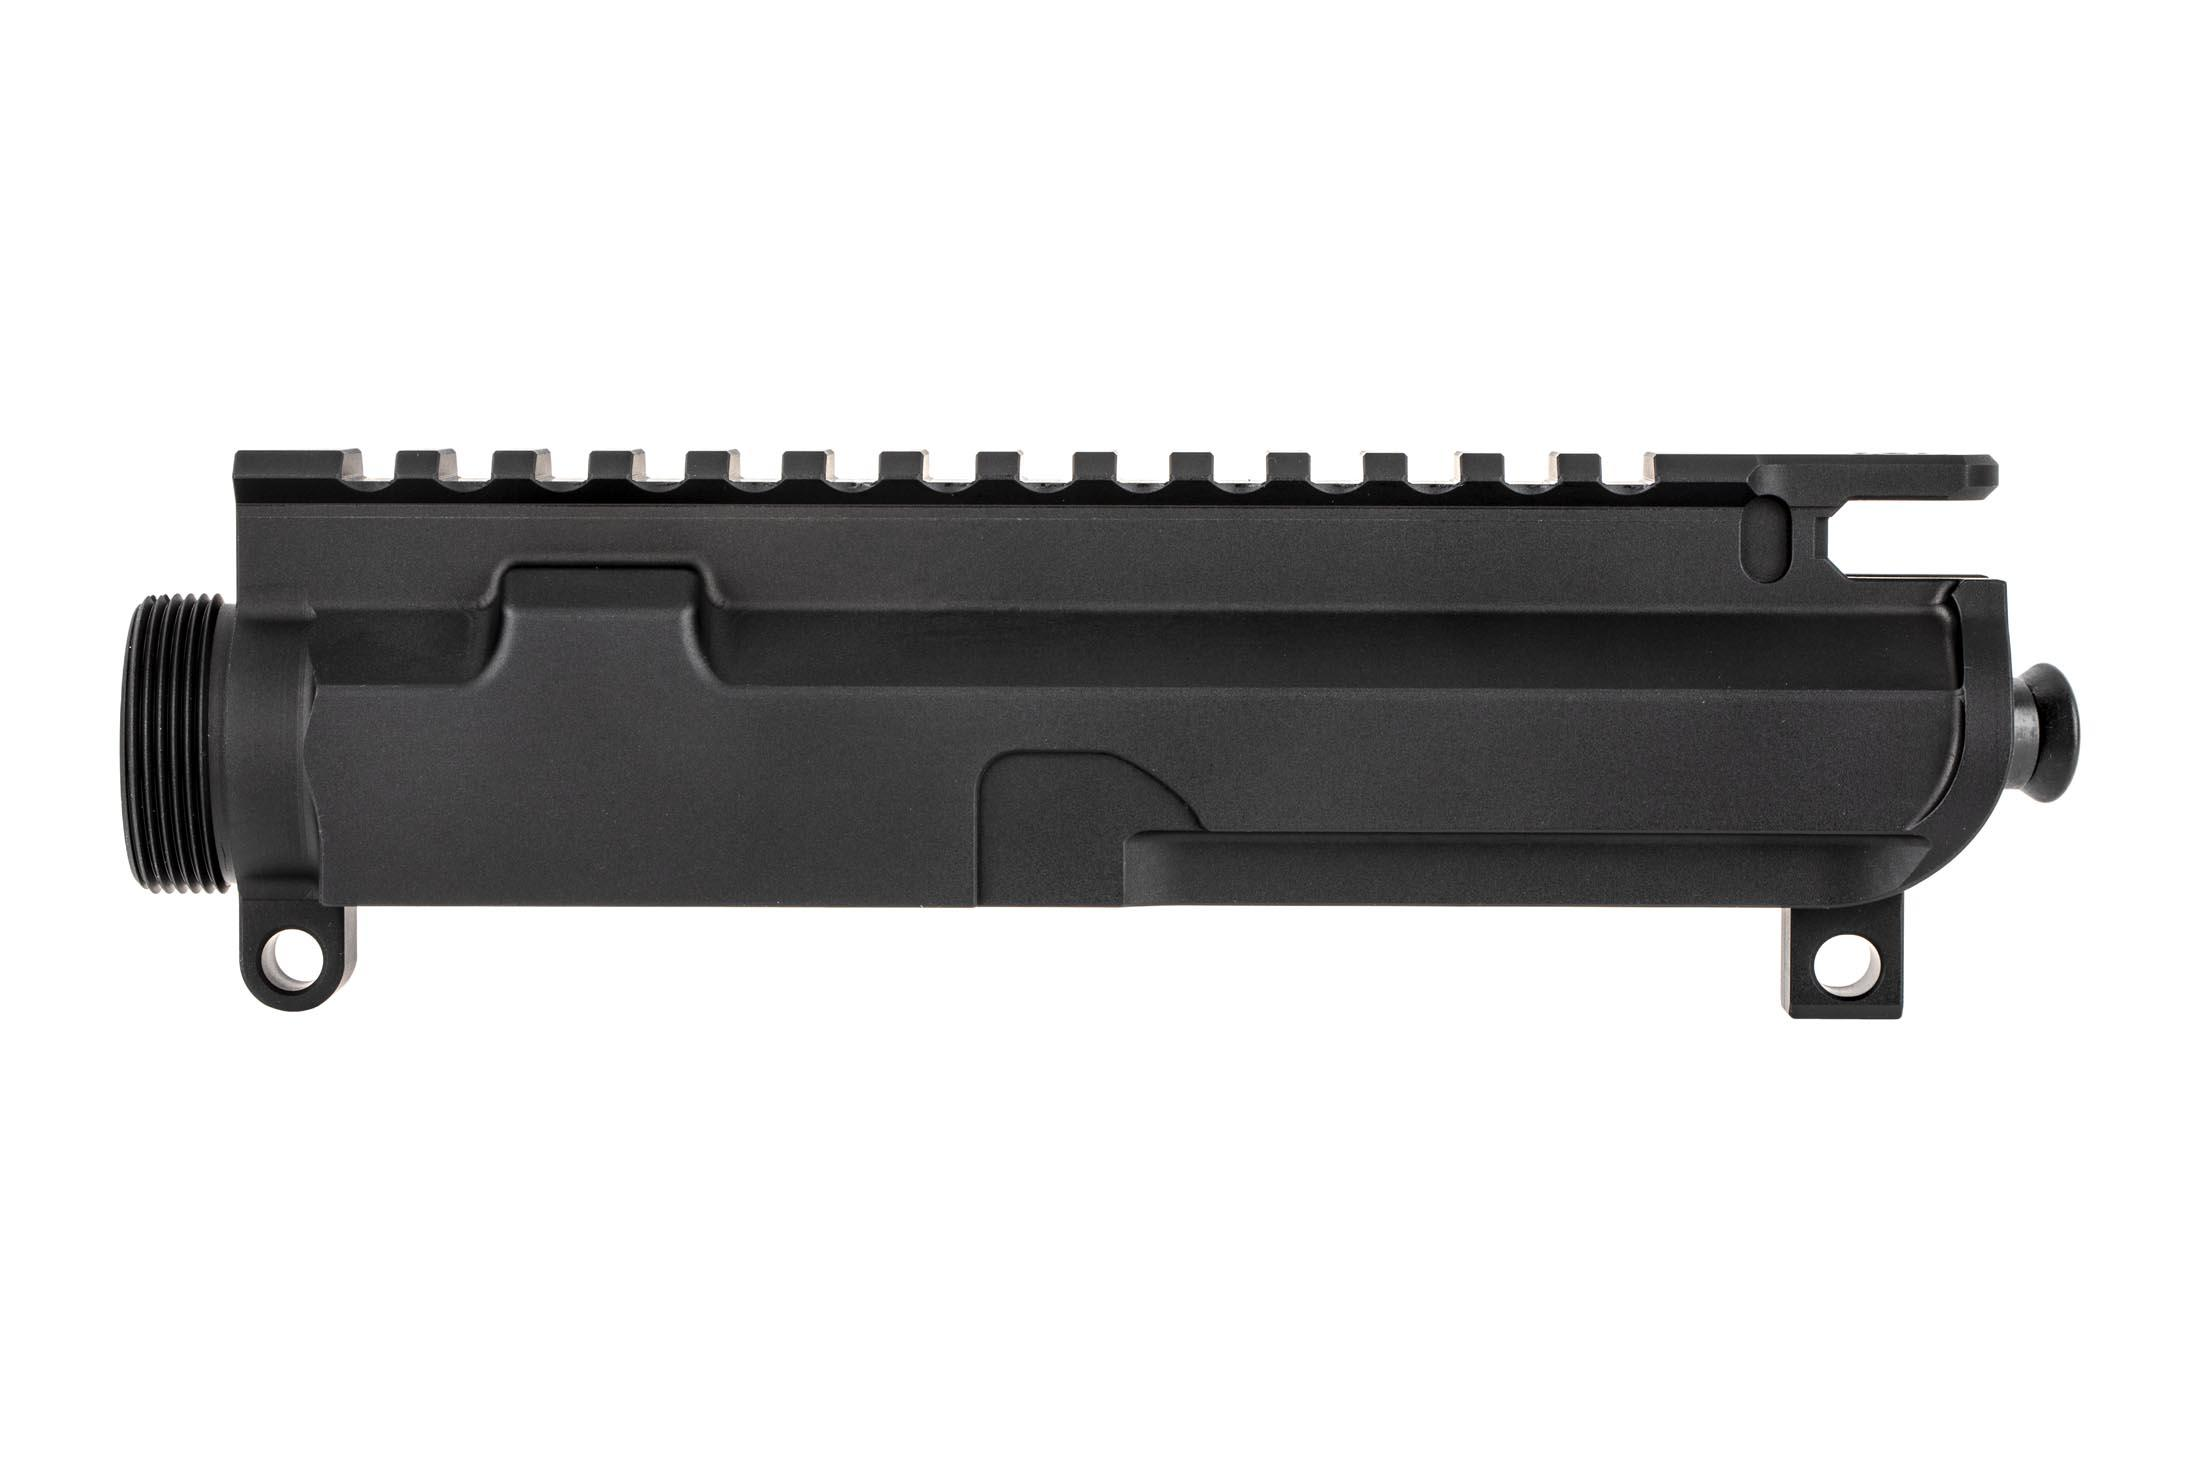 Rosco Manufacturing Purebred AR 15 uppers are carefully machined from 7075-T6 aluminum with tough anodized finish.